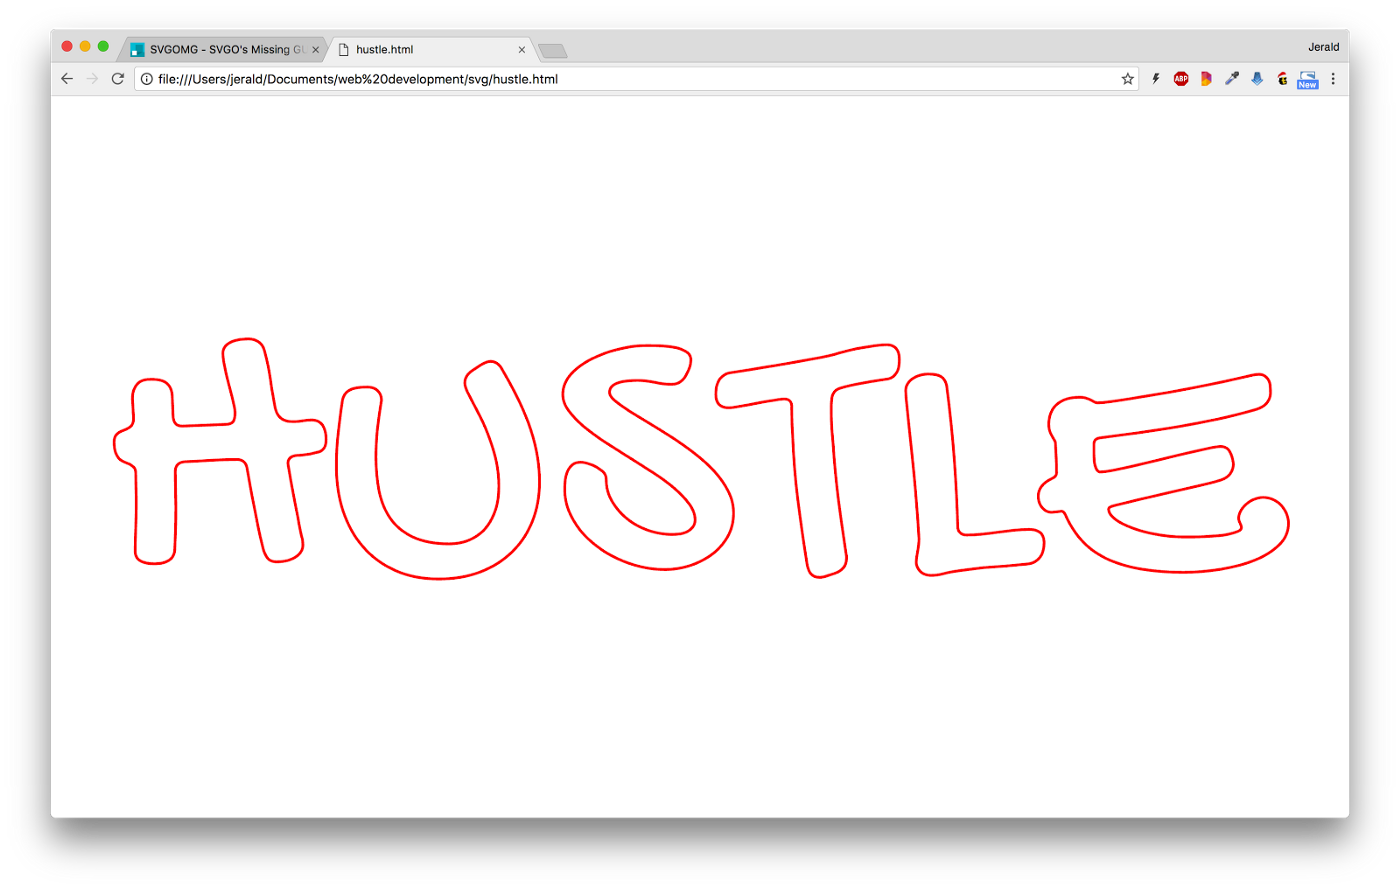 The Ultimate Guide to Animating Drawn Text in HTML with CSS, no